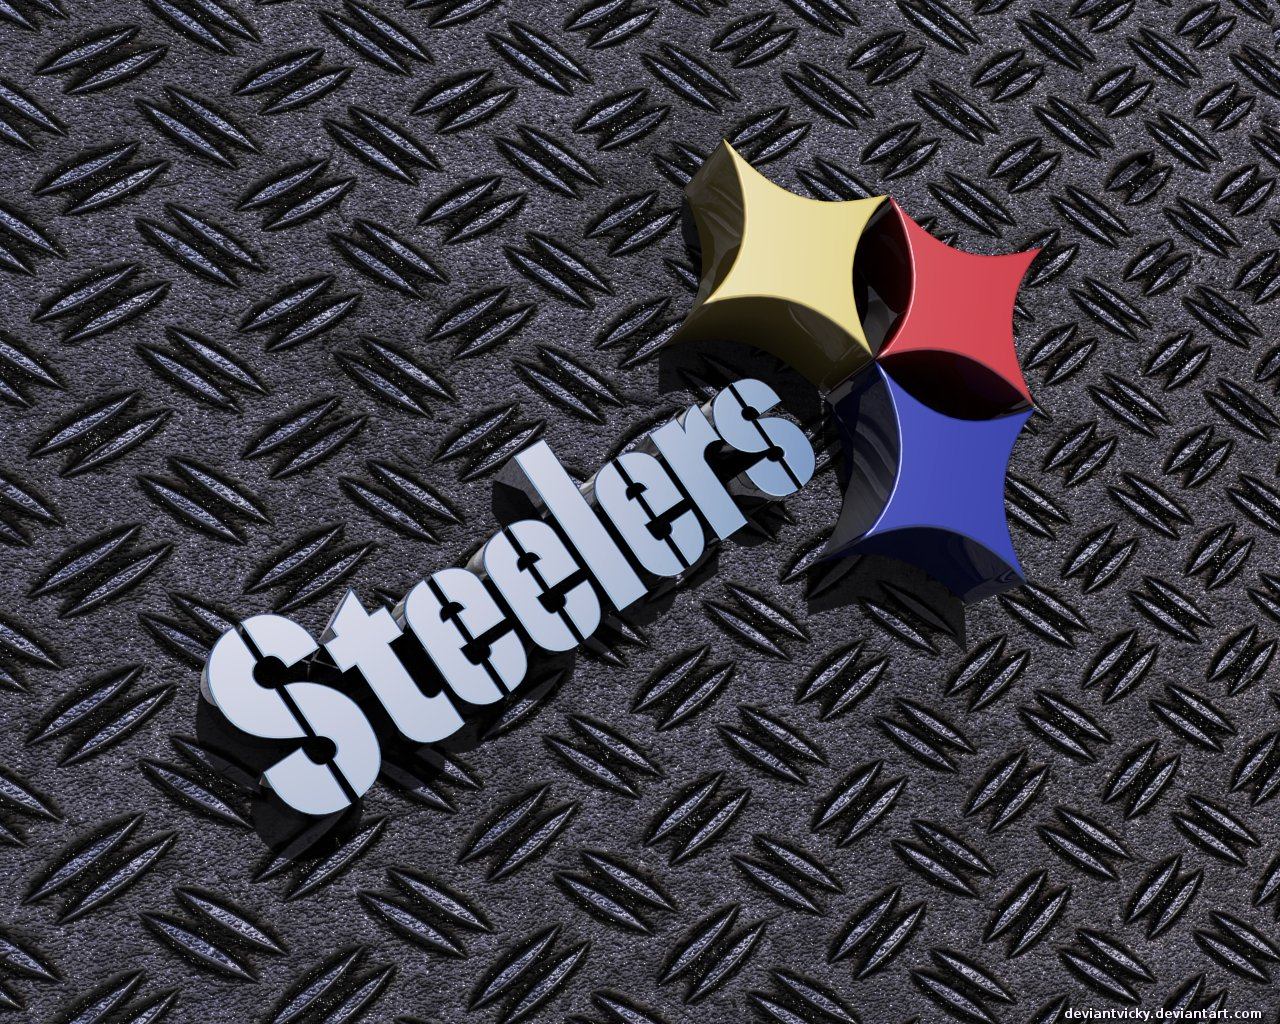 Pittsburgh Steelers Wallpaper Collection Sports Geekery 1280x1024 67469689f